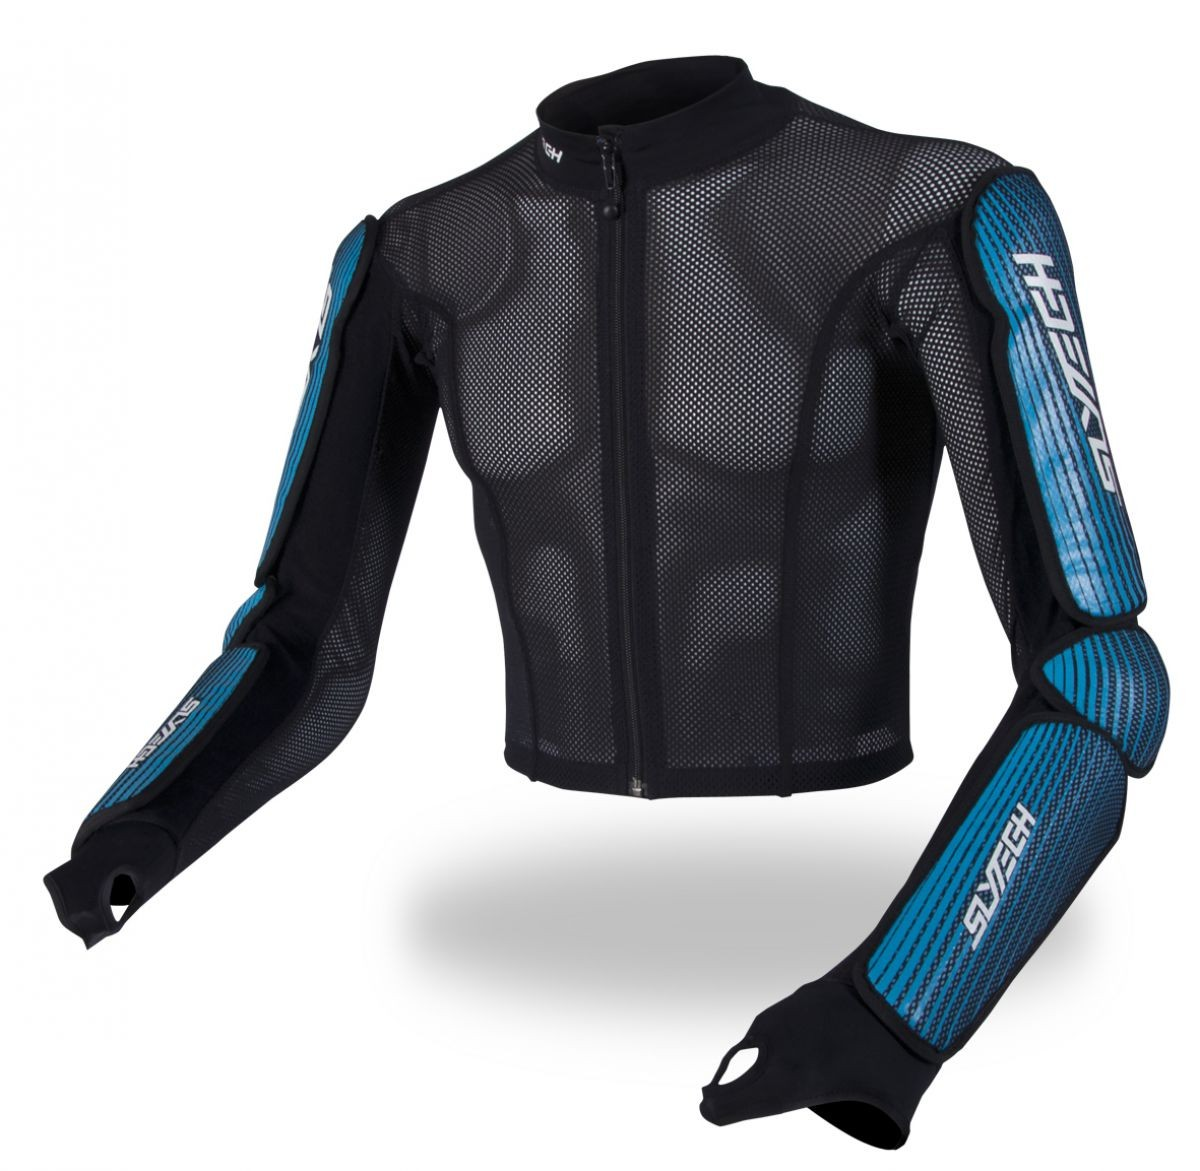 Slytech 2nd Skin jkt custompro race xt